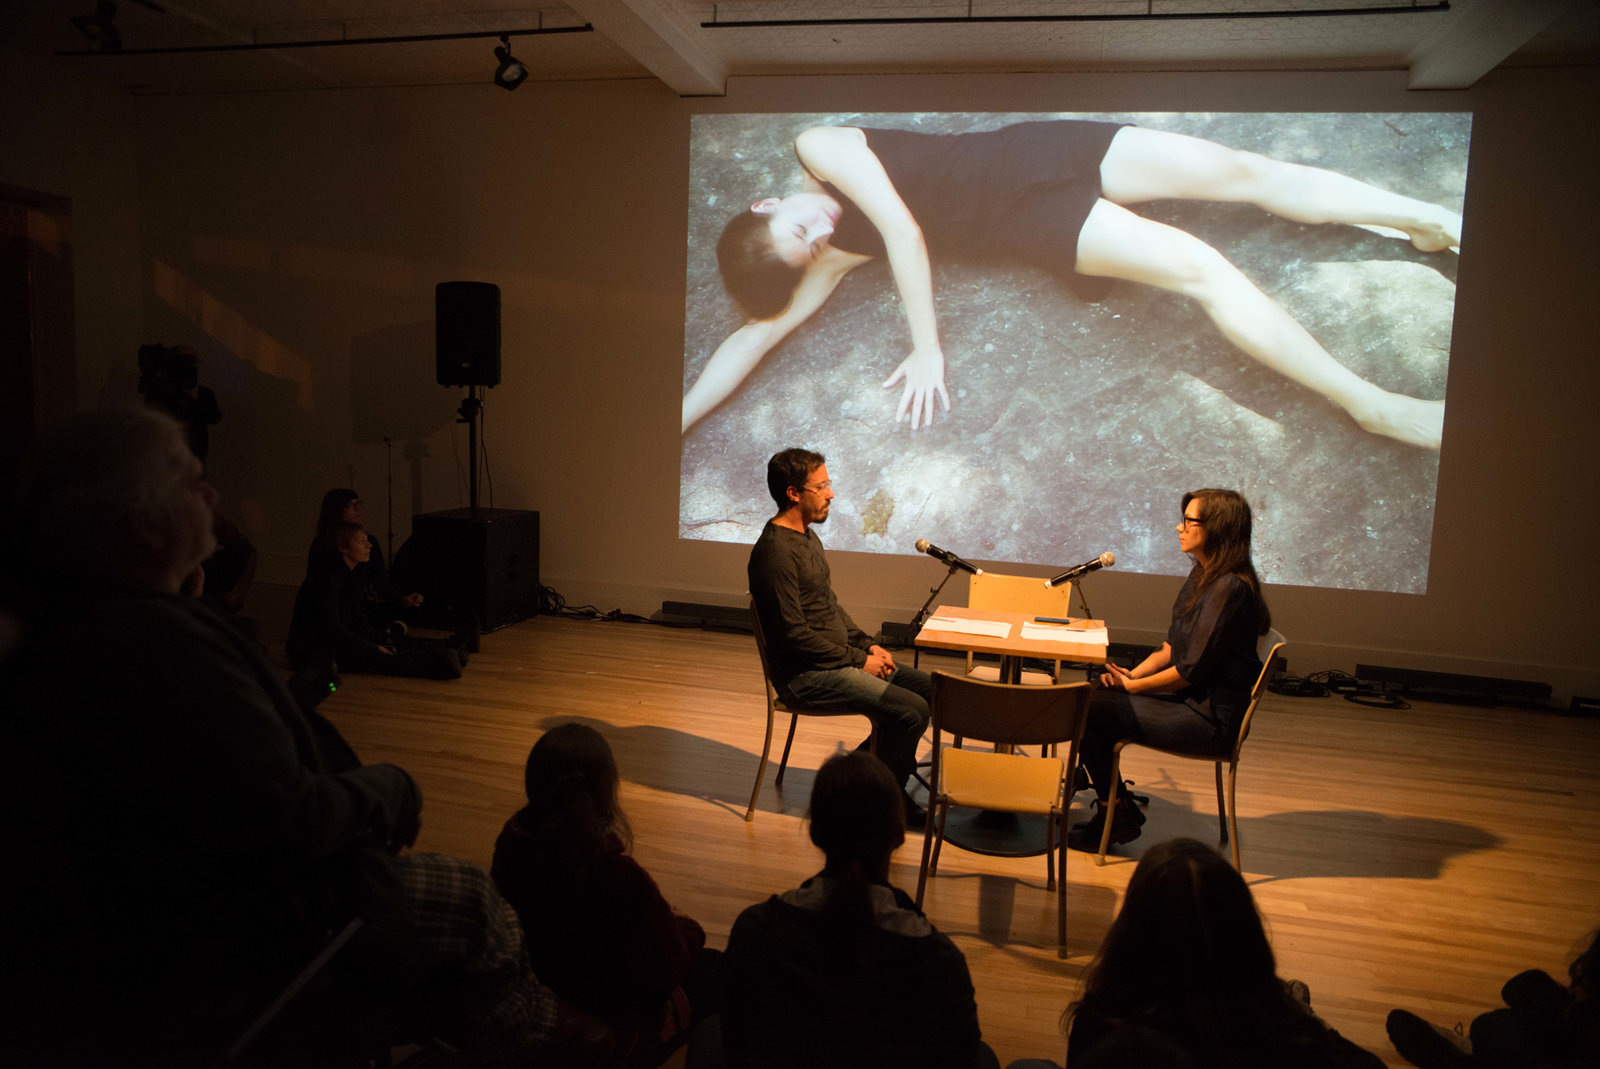 Tanya Lukin Linklater, the the, 2014–2016, performance of artist reading the long poem 'Not like us' with simultaneous translation by another reader into French, Spanish or Cree. Performance documentation, 7 Biennale d'art performatif, Rouyn-Noranda, Canada, 2014